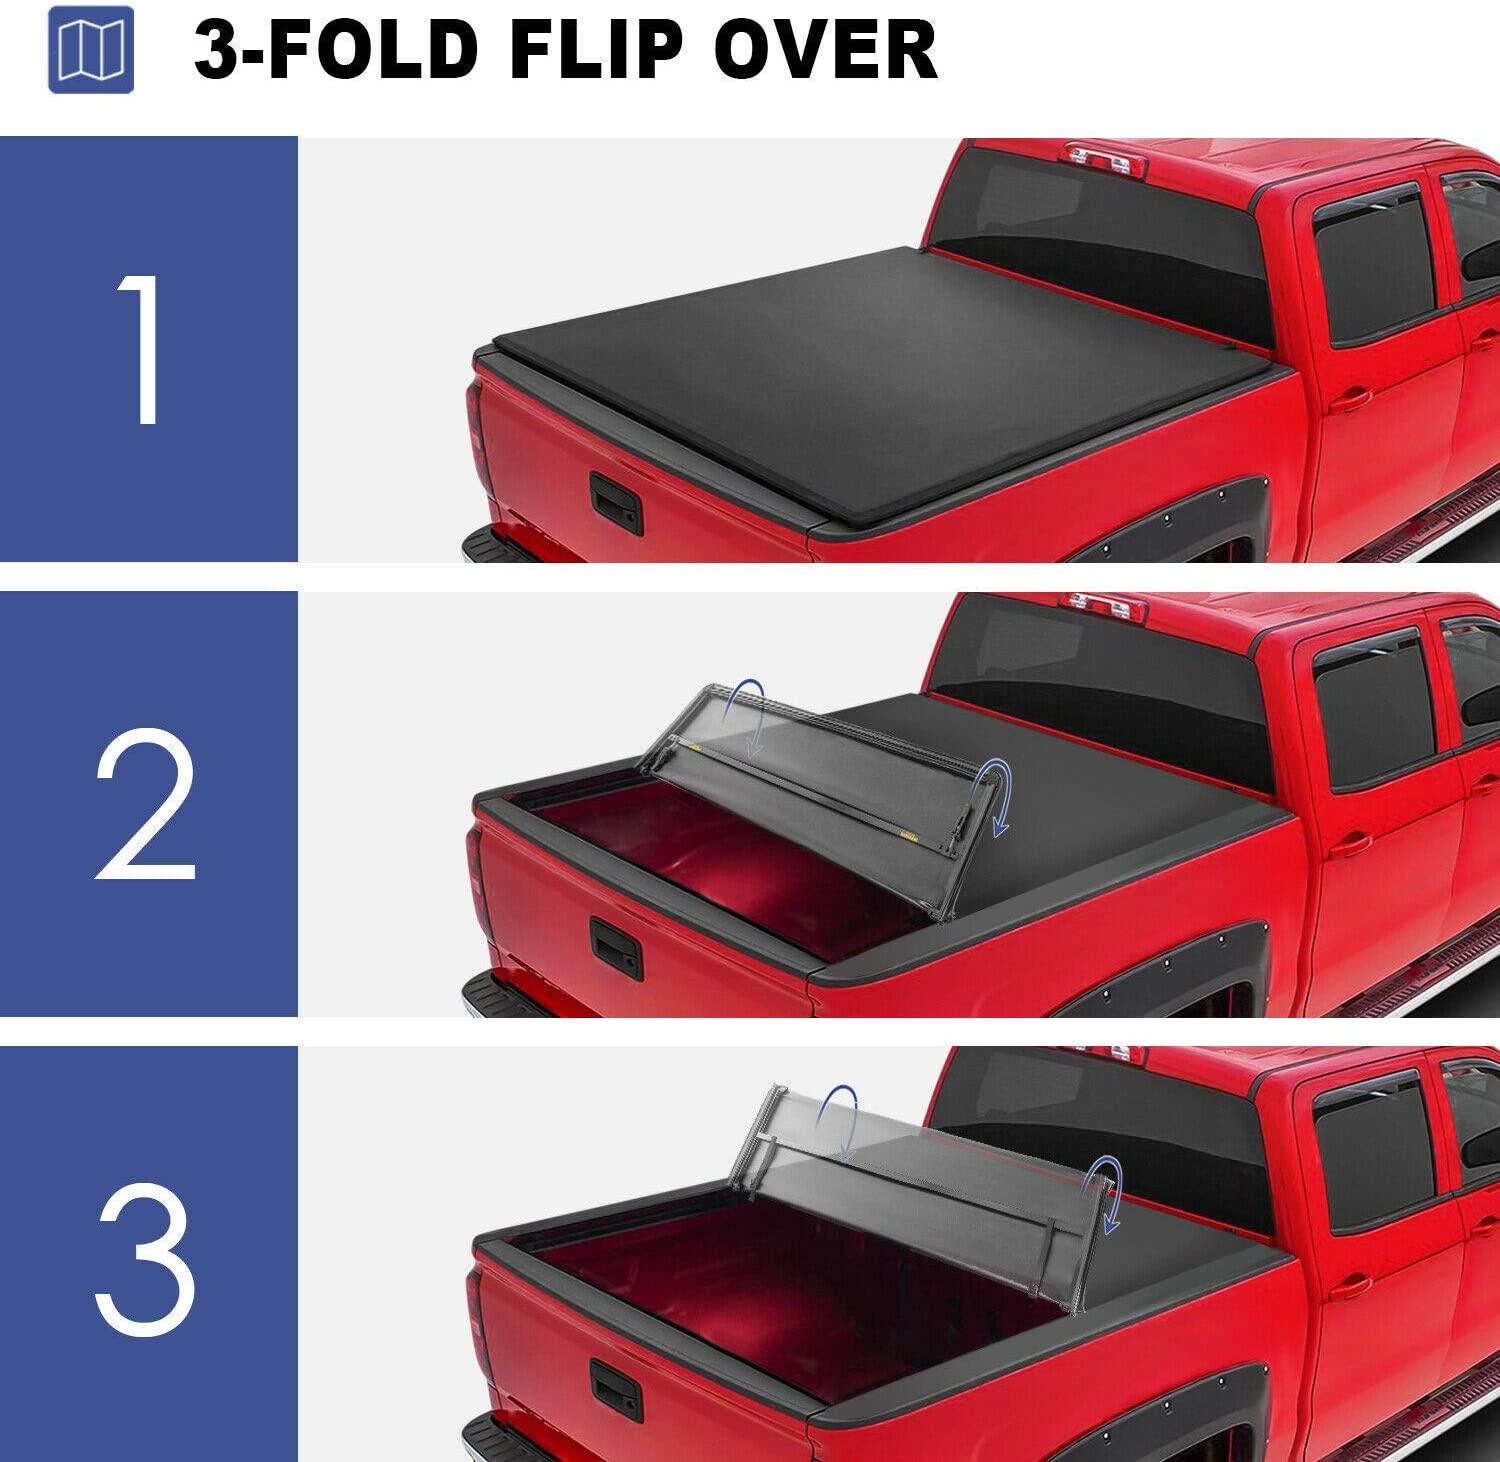 MOSTPLUS Tri-Fold Soft Truck Bed Tonneau Cover Compatible for 2019-2021 Chevy Silverado//GMC Sierra 1500 2500 3500HD Fleetside 5.8 FT 2019 1500 ONLY